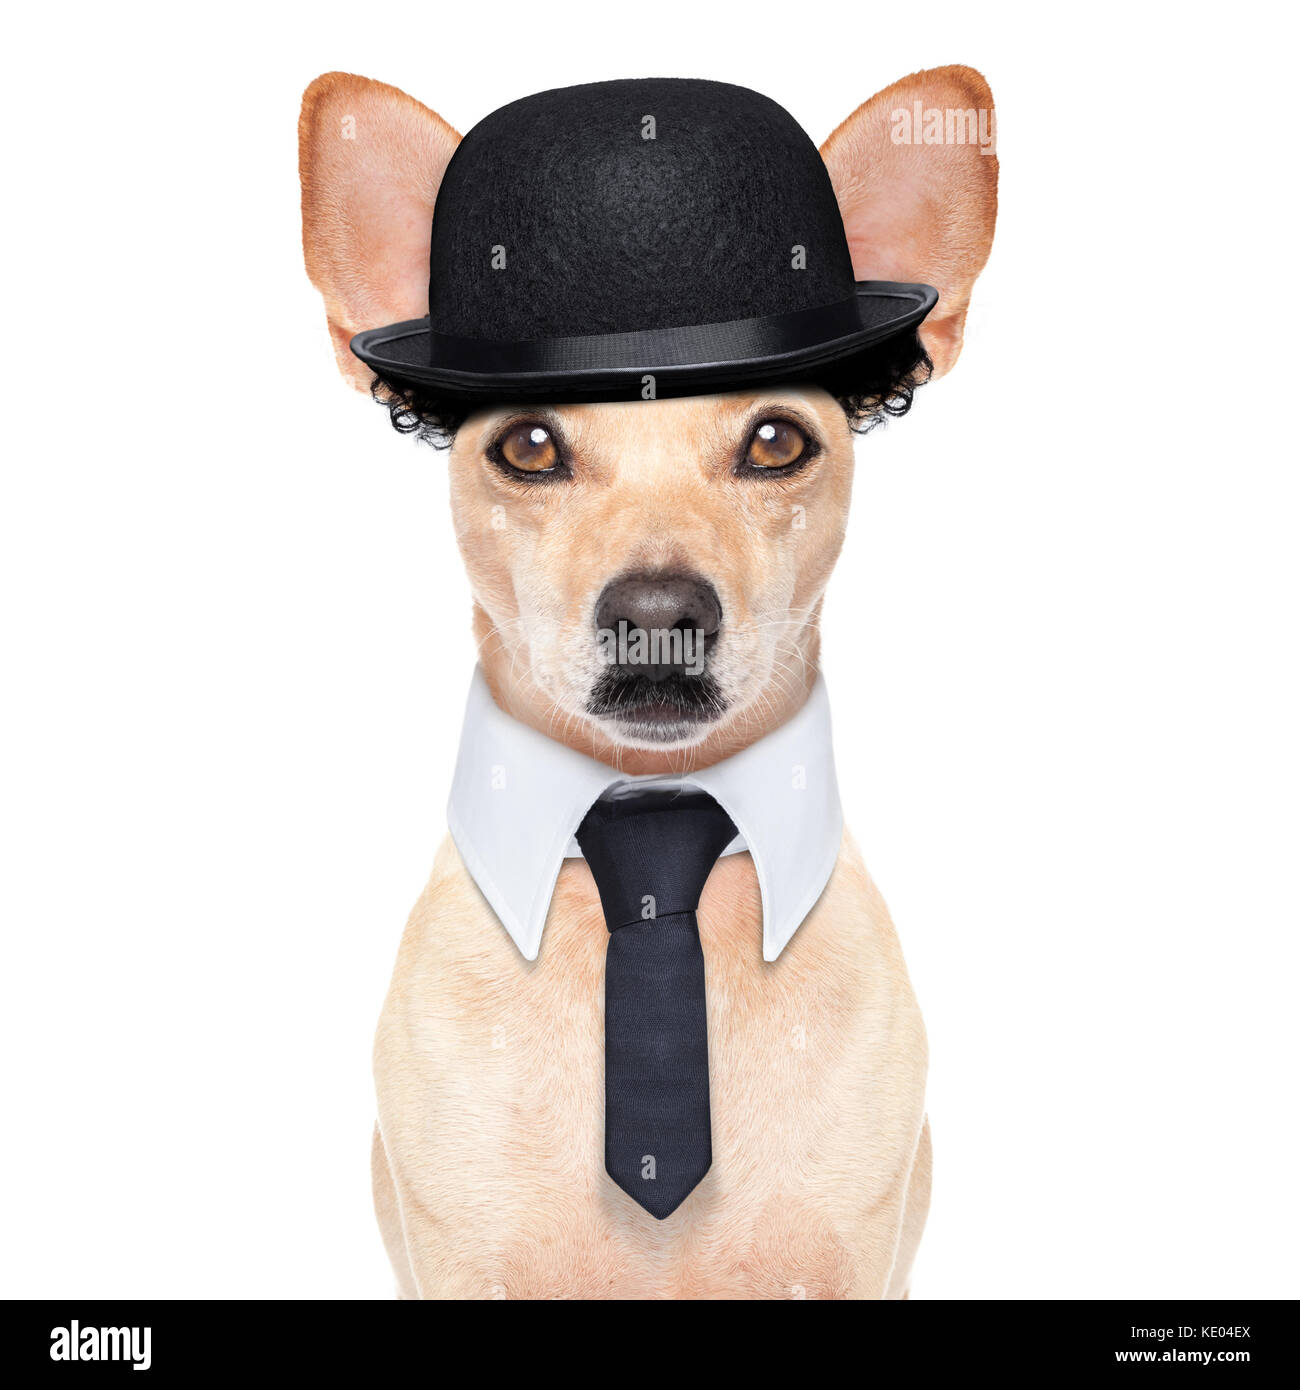 comedian classic dog terrier, wearing a bowler hat ,black tie and mustache, isolated on white background - Stock Image